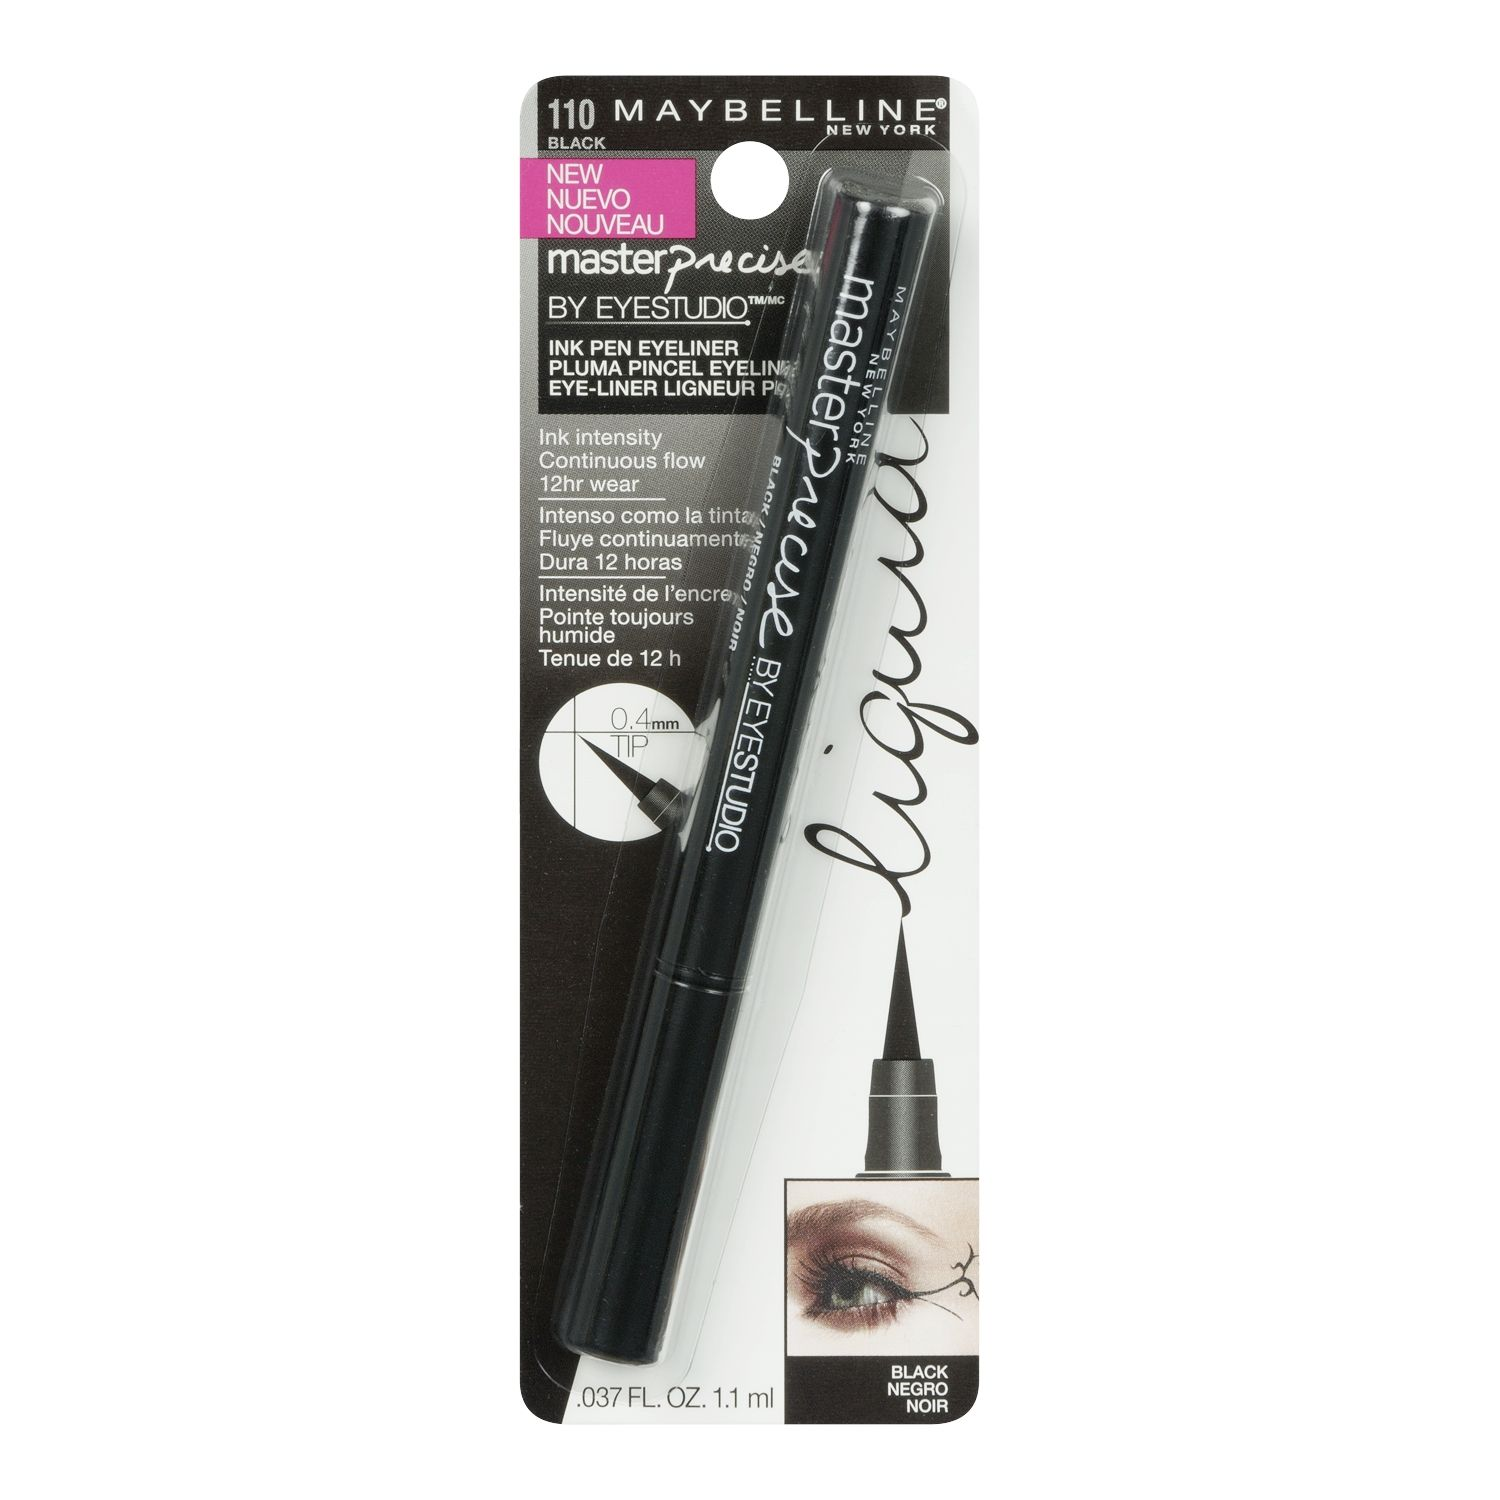 Absolute best drug store eyeliner! Maybelline Master